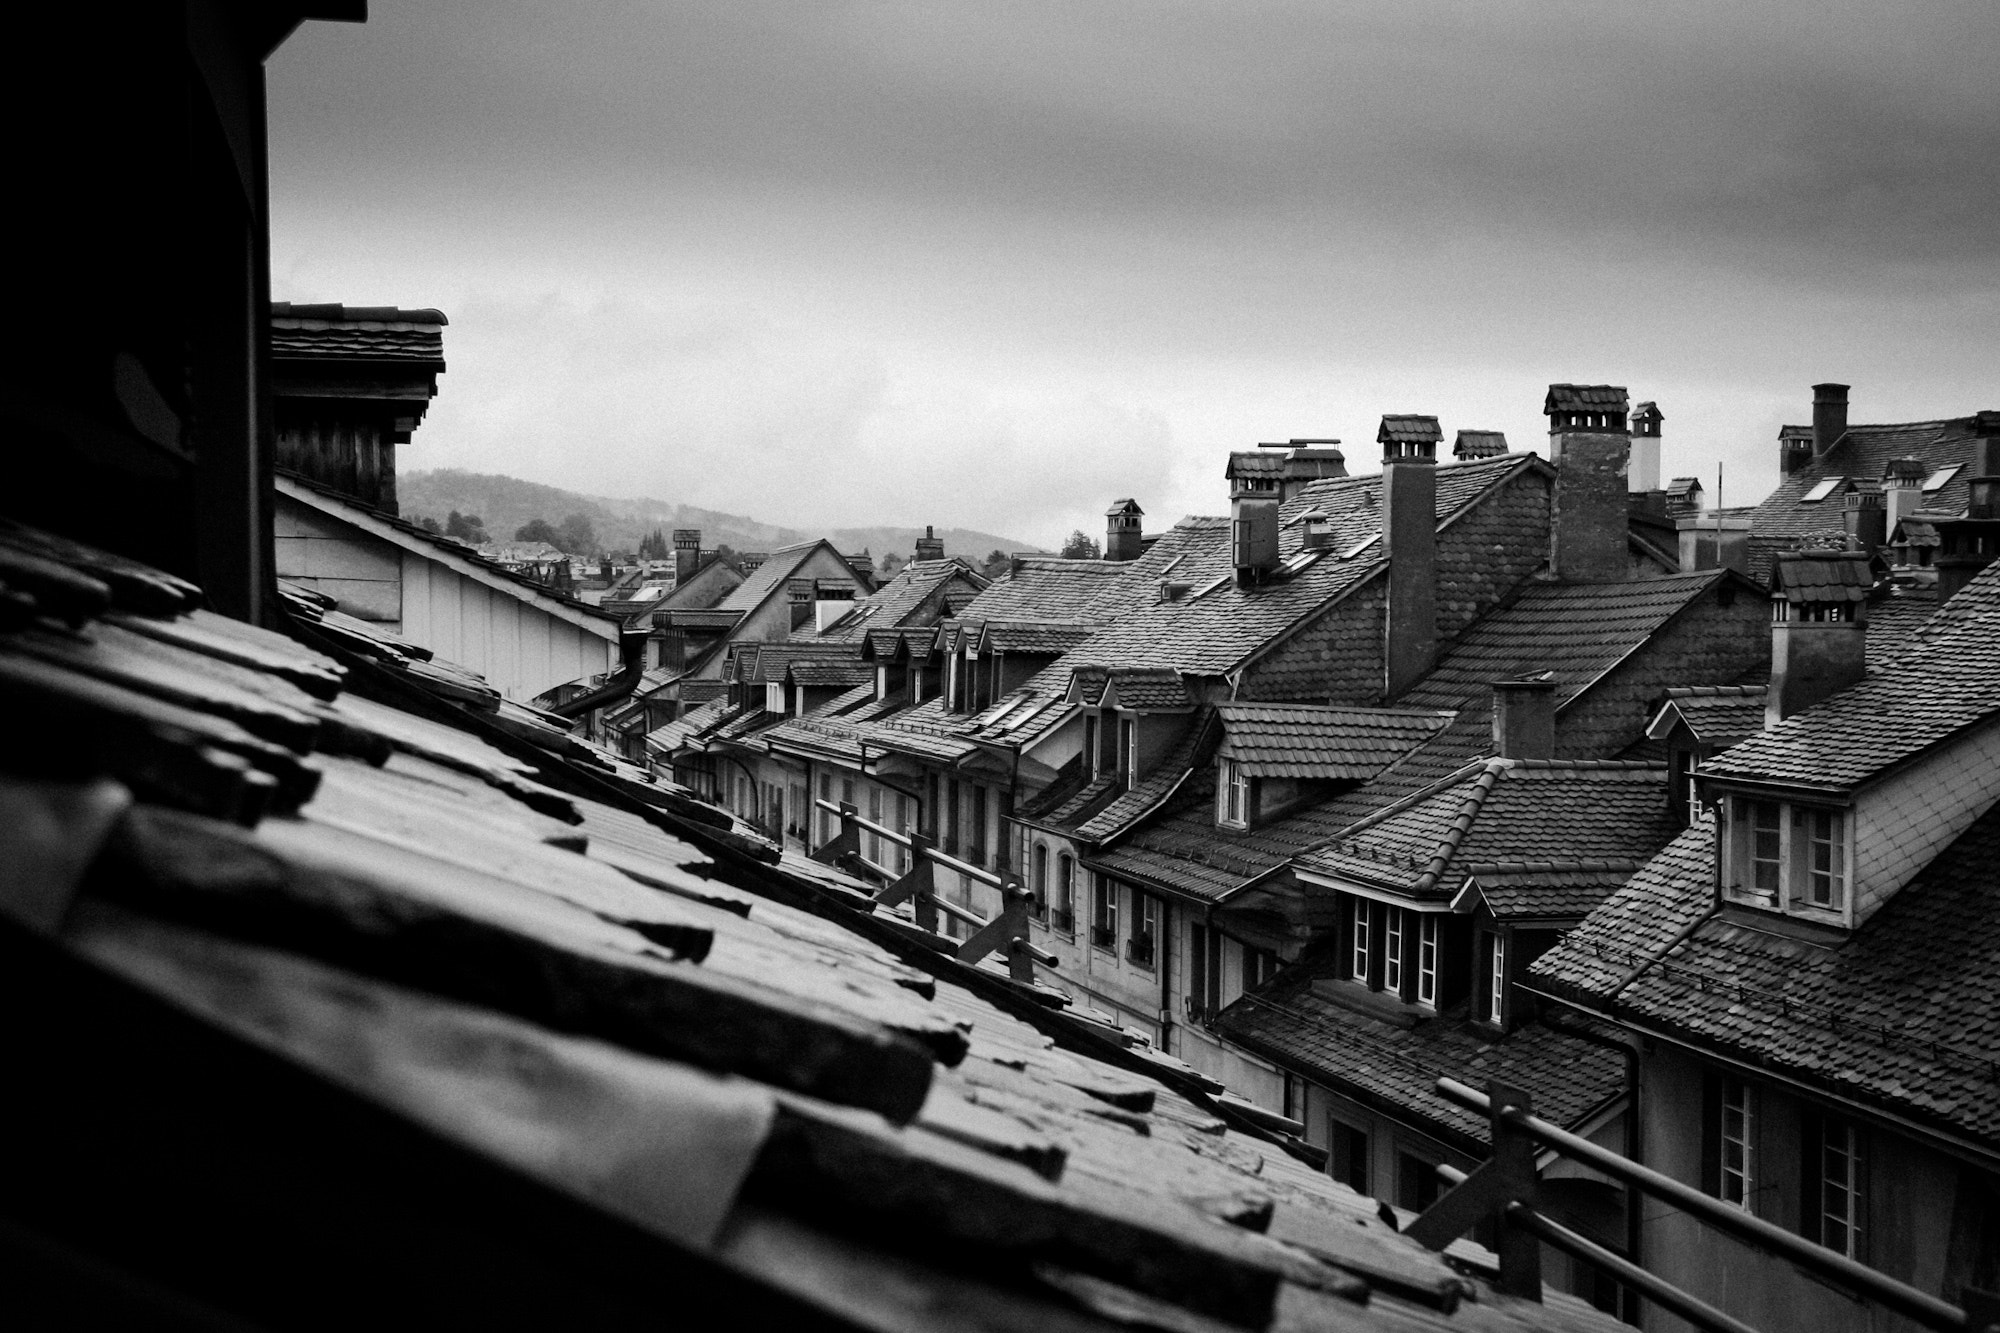 Photograph Rooftops of Berne by Mark Prince on 500px